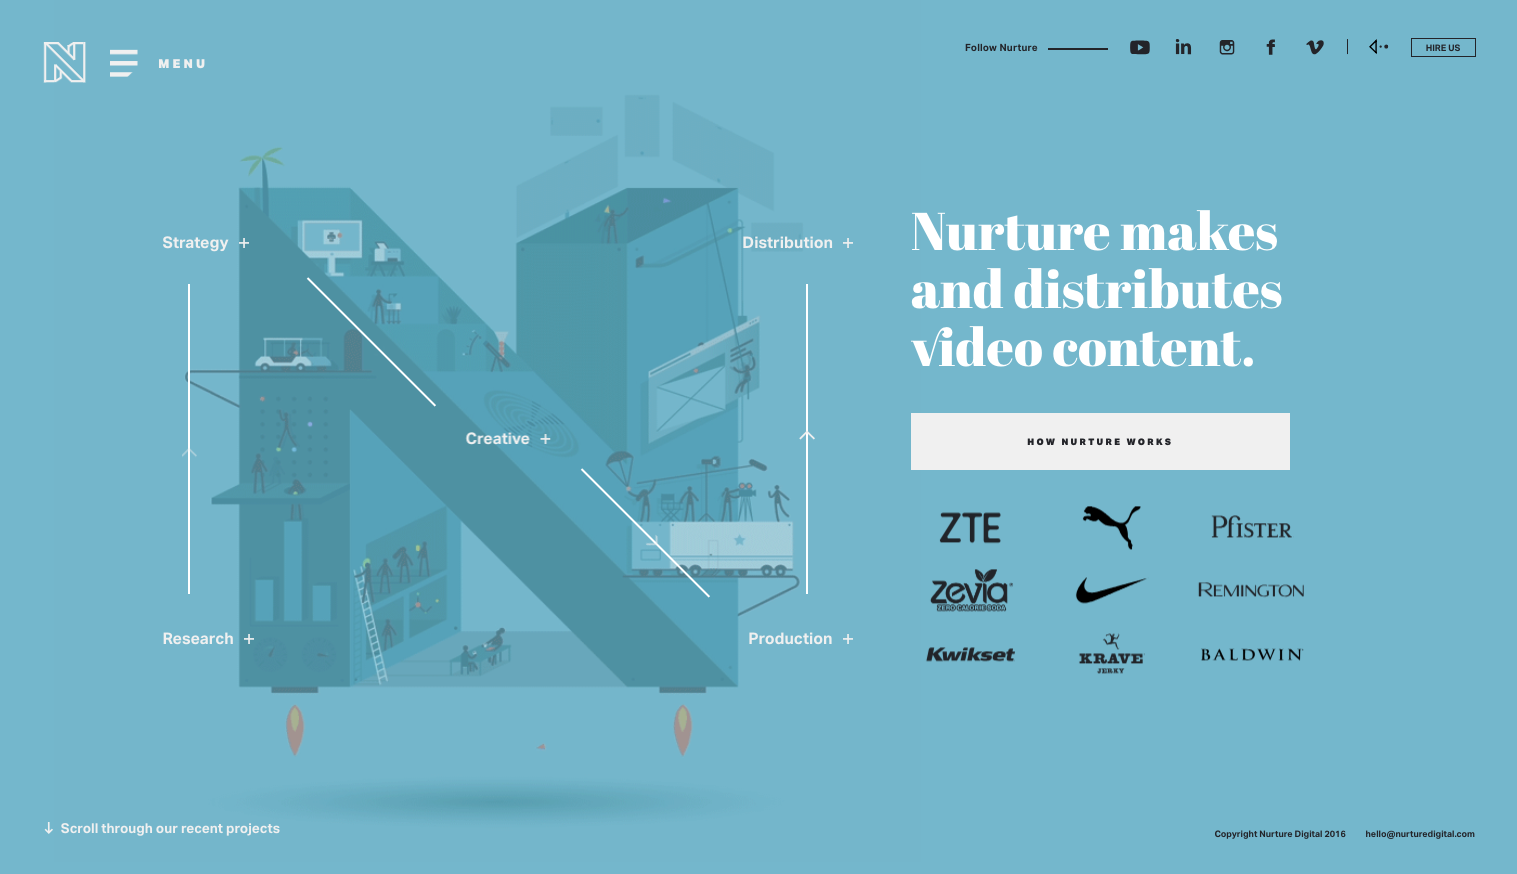 Nurturedigital.com is a good website design example for its excellent use of typography